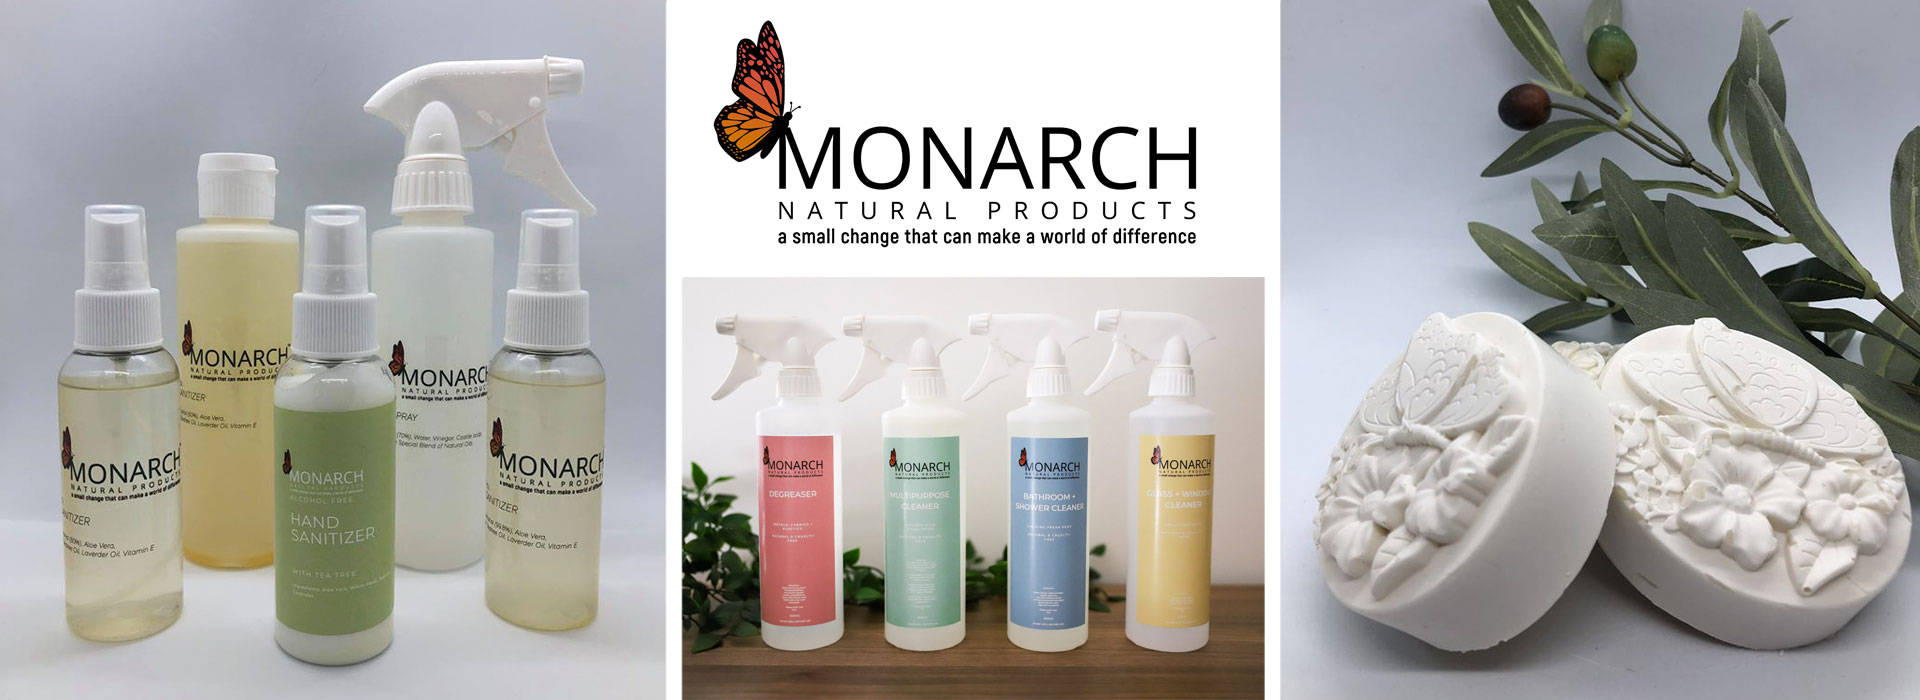 Monarch Natural Products Banner